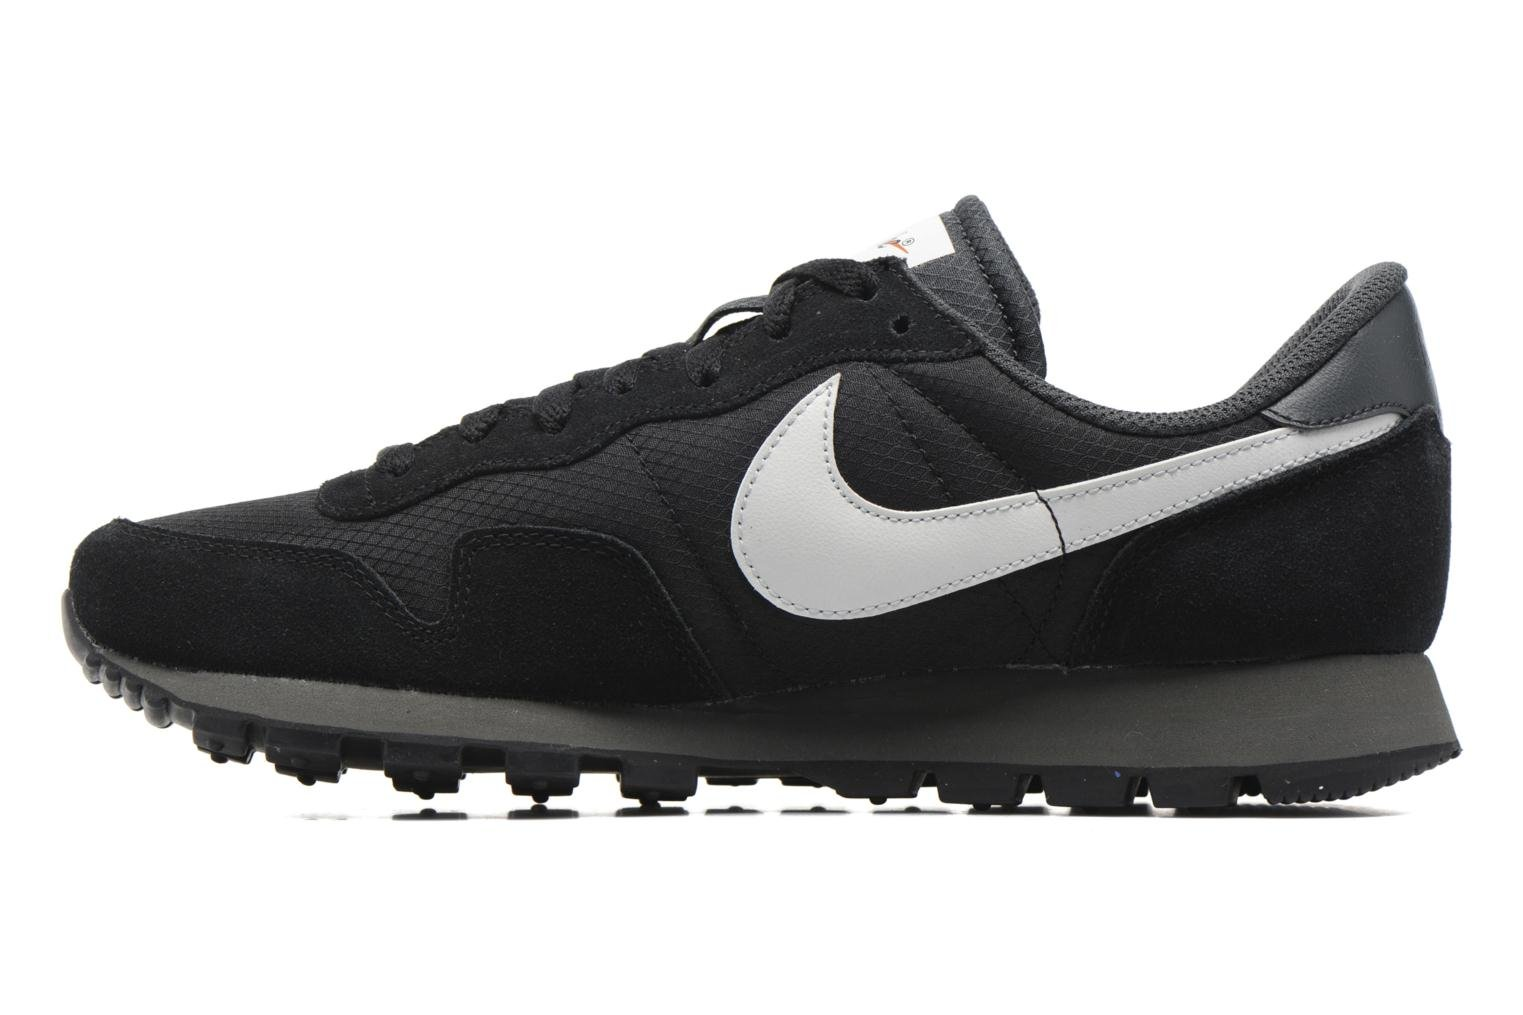 Nike Air Pegasus 83 Black/Pure Platinum-Anthracite-White